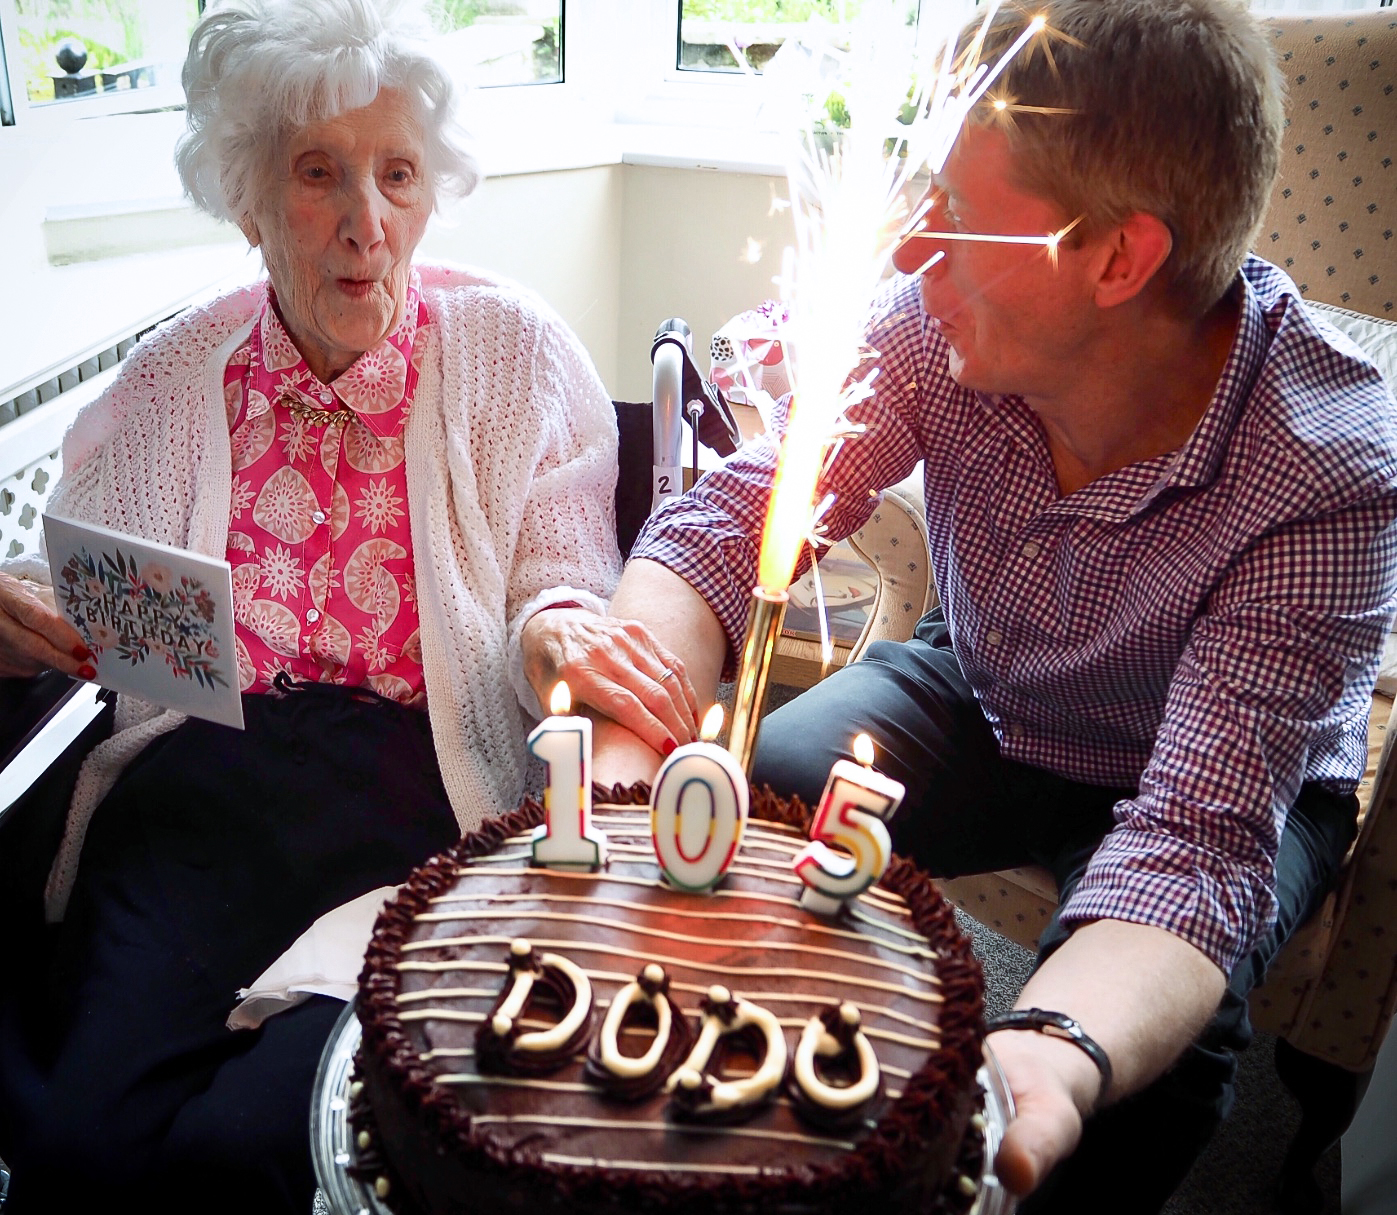 Dorothy and her grandson celebrating her birthday at Redcot care home in Haslemere